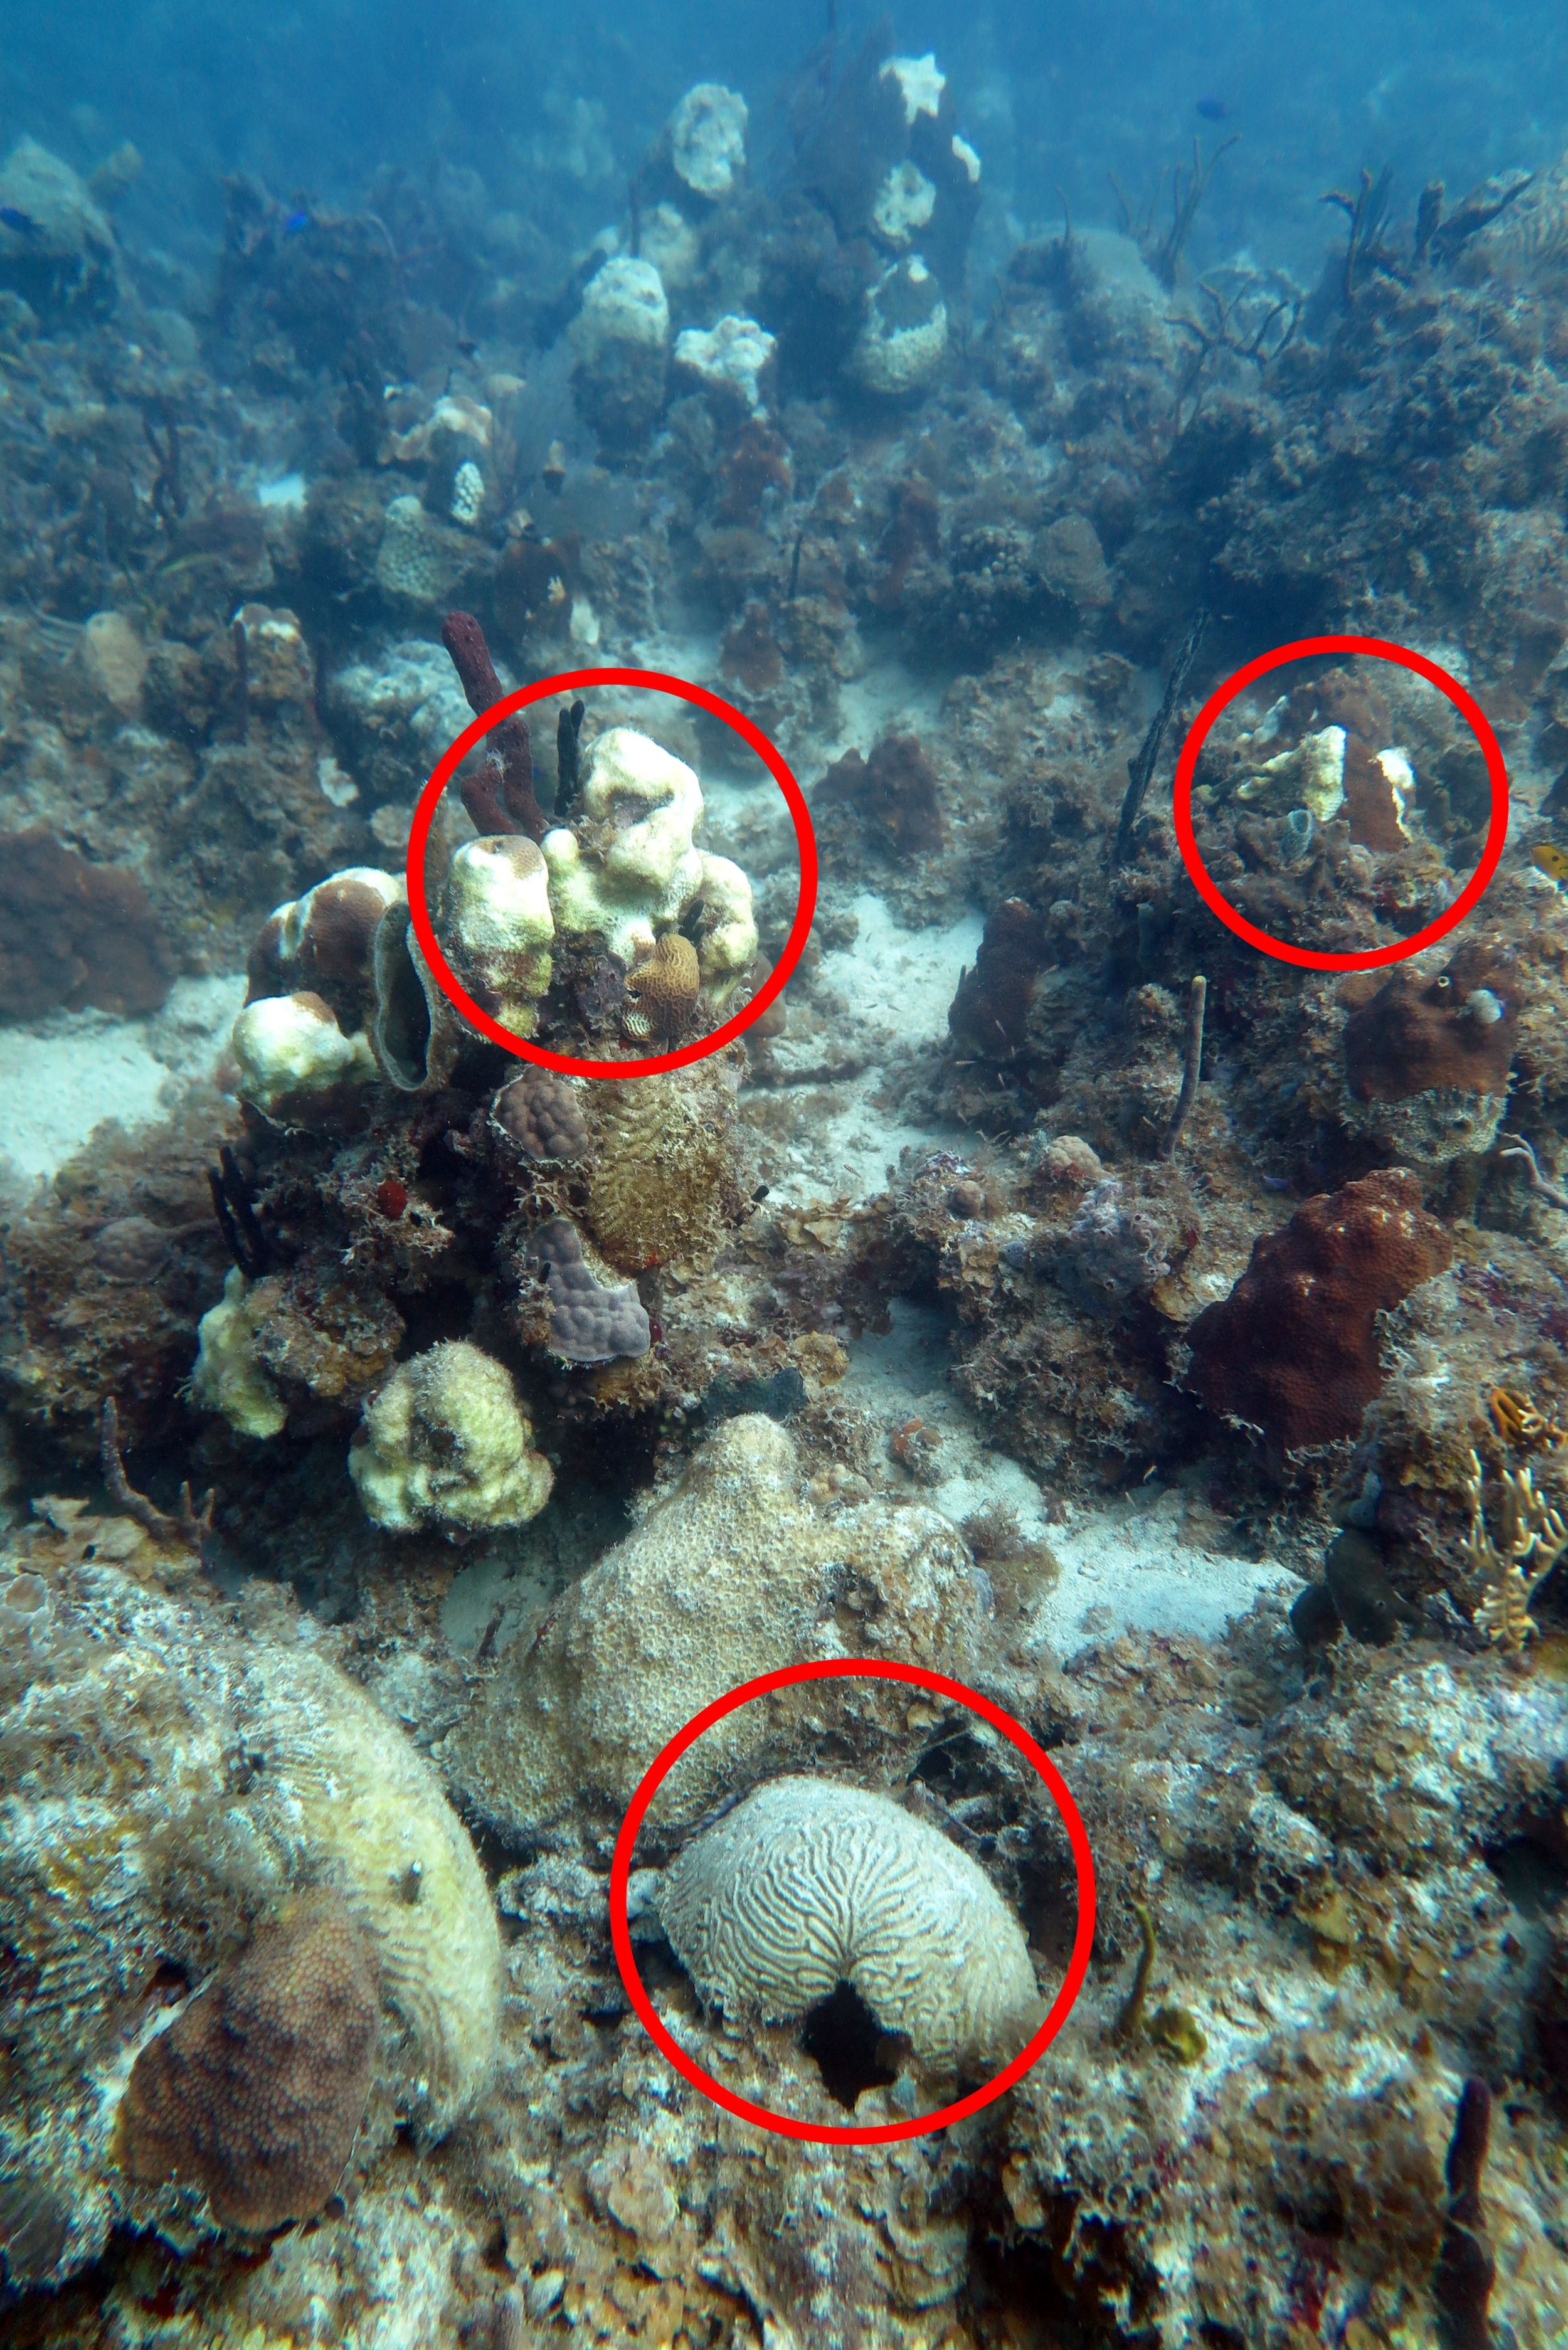 Suspected Stony Coral Tissue Loss Disease is ravaging this reef colony in St. Thomas, USVI waters.   Photo credit: Marilyn Brandt, Ph.D.